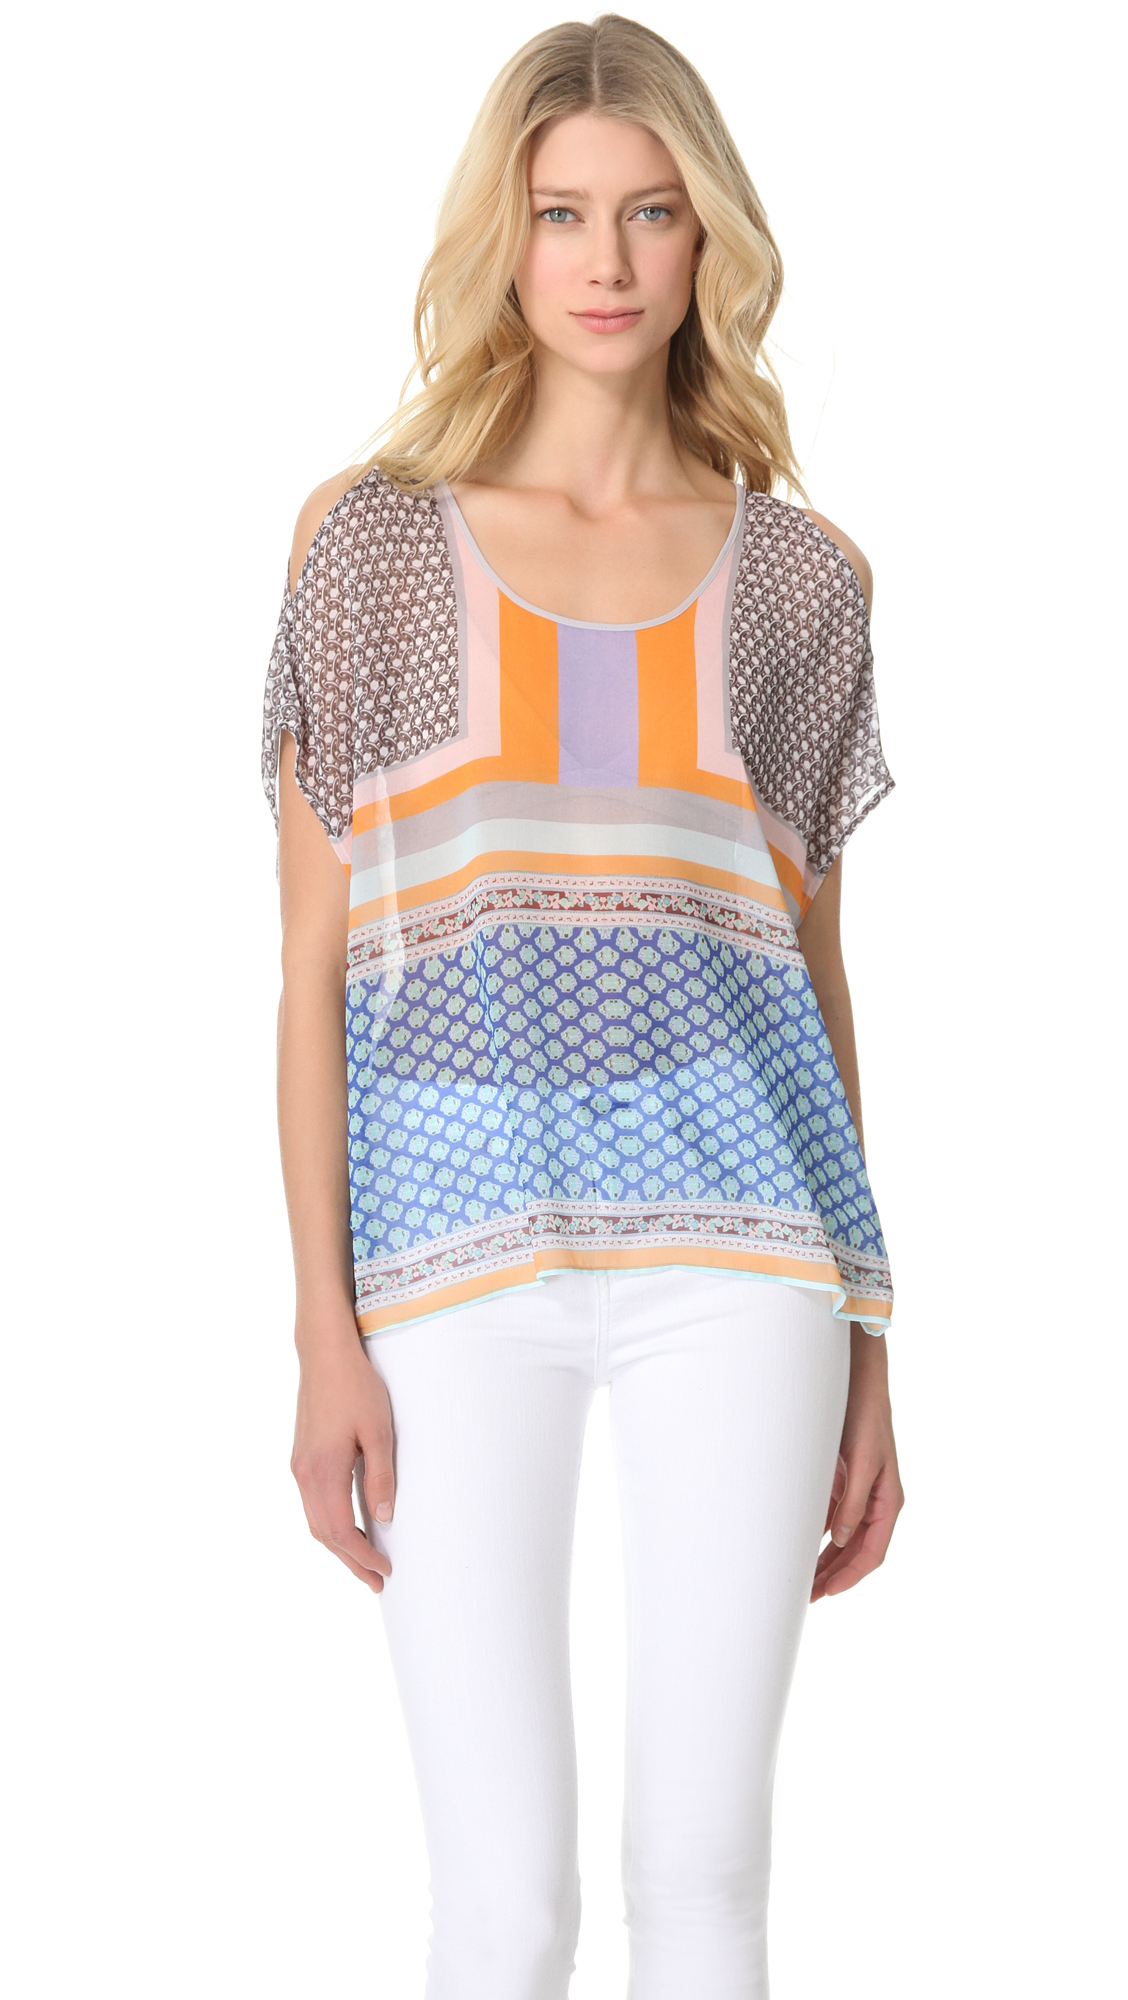 b9981af690778 Clover Canyon Chainmail Chiffon Top on PopScreen